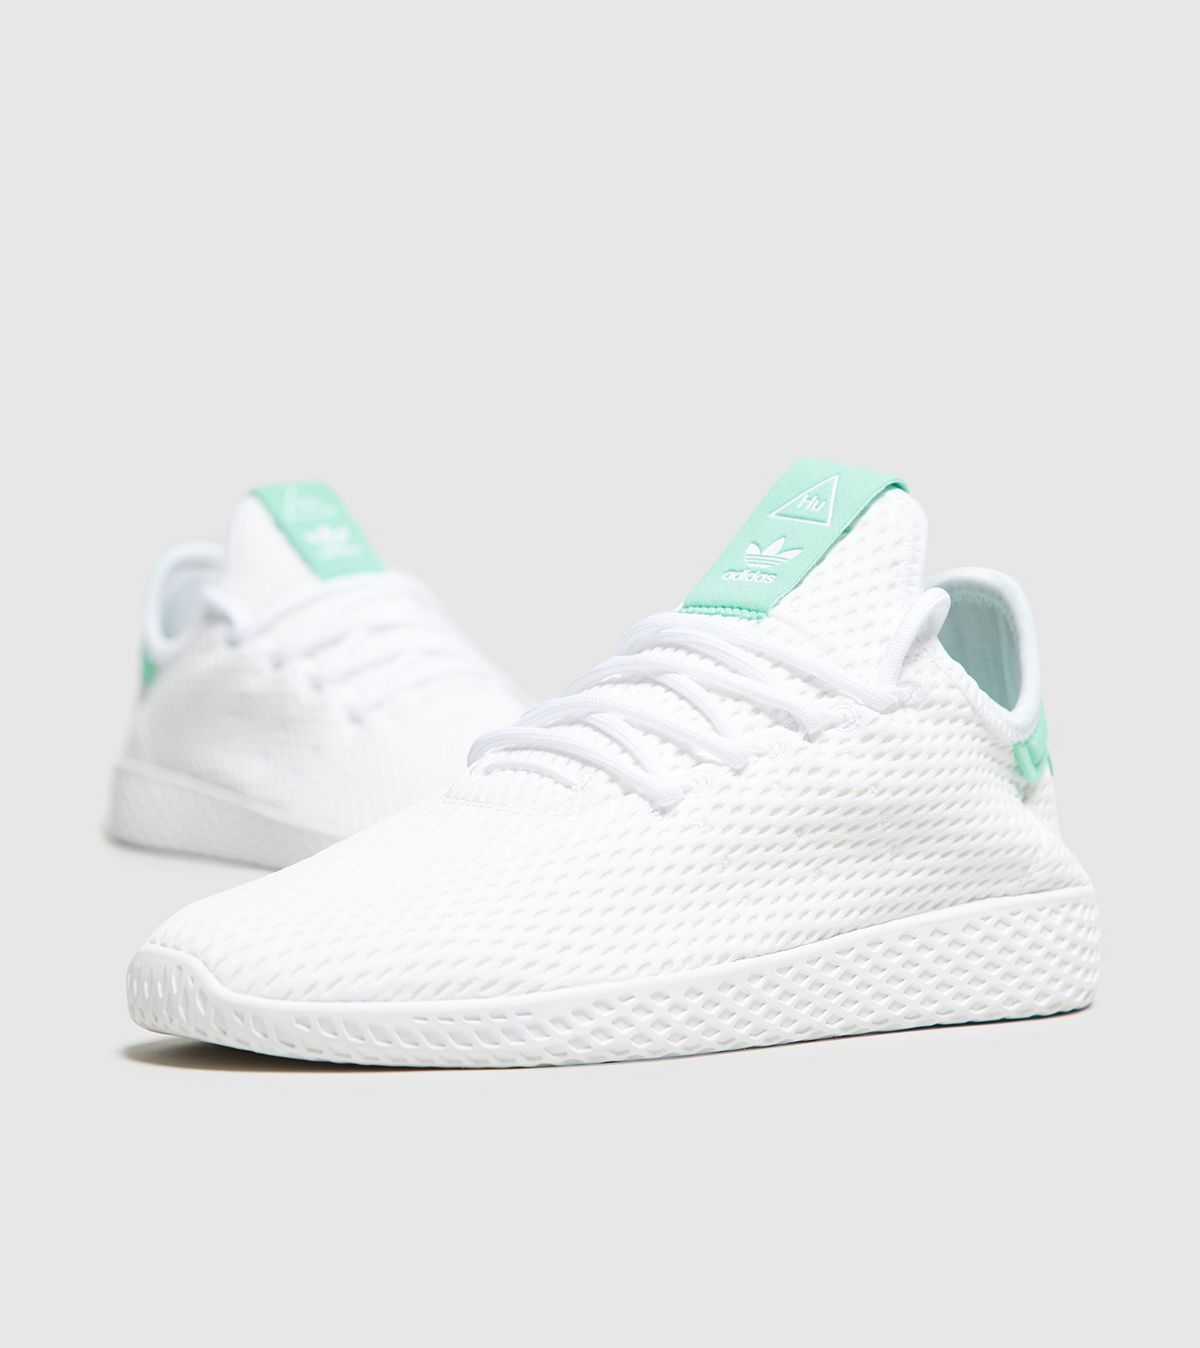 d76564d1f8cee adidas Originals Pharrell Williams Tennis Hu mint green white